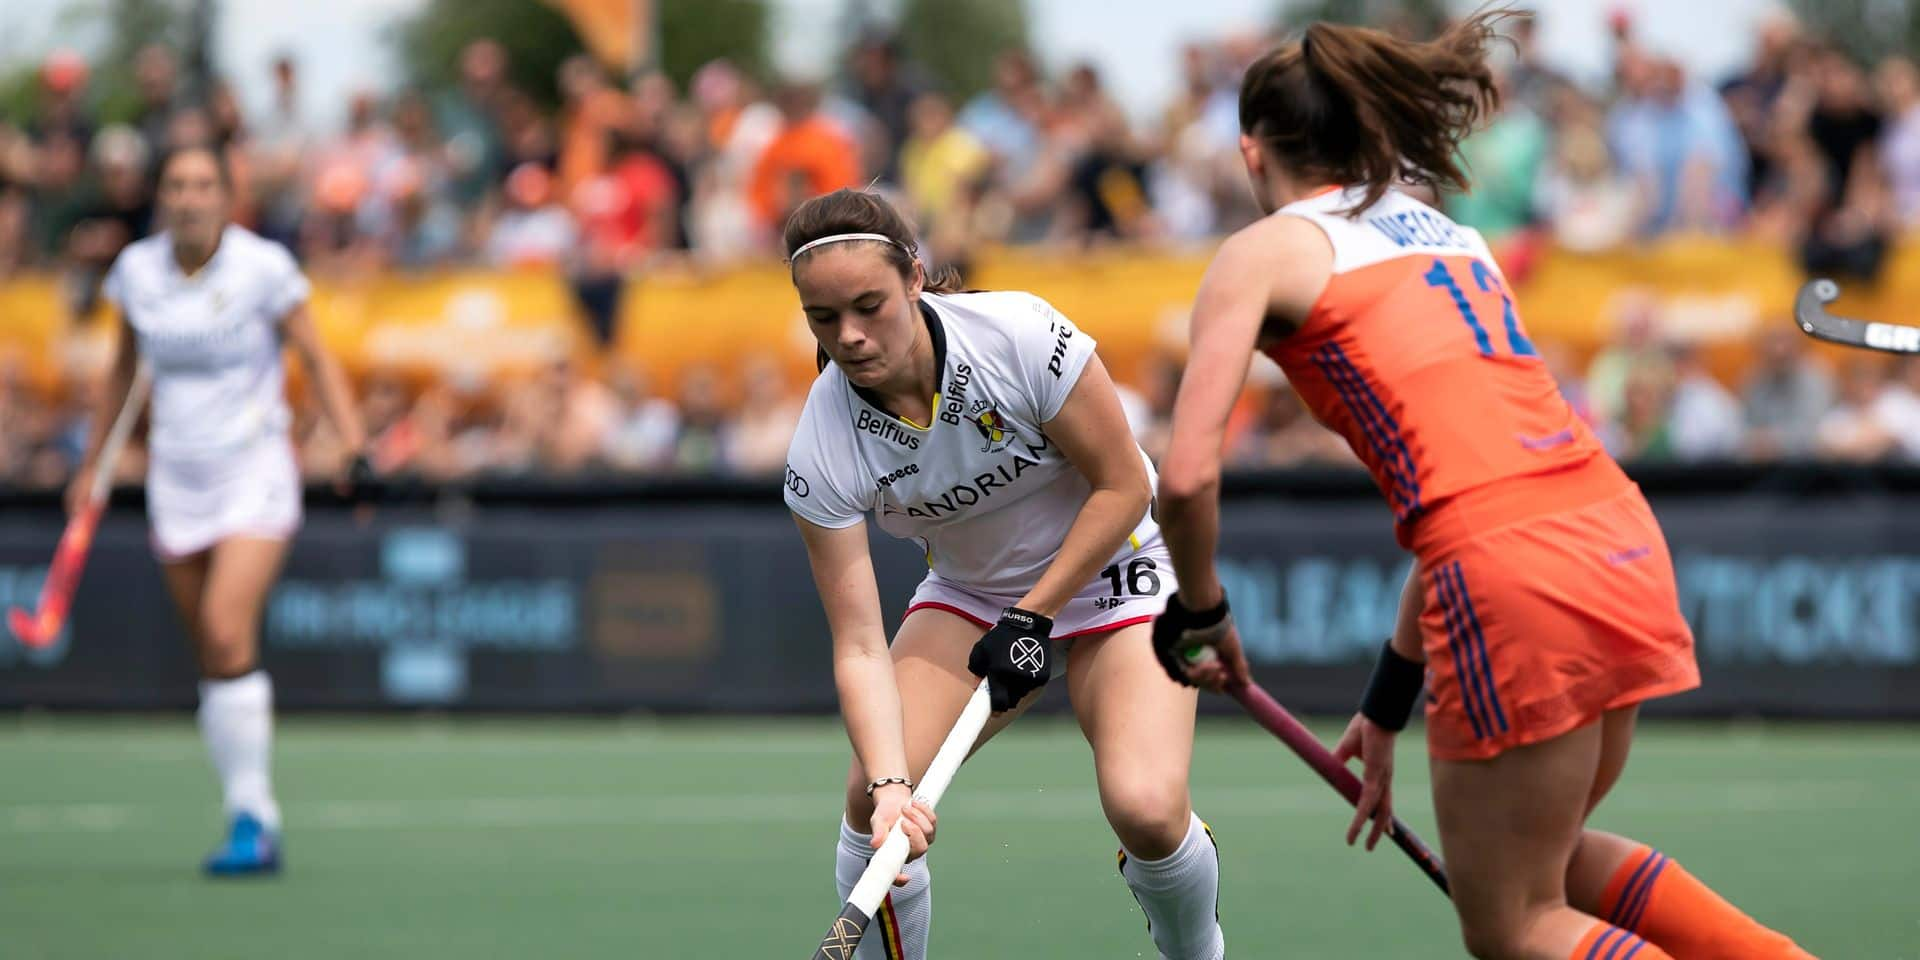 Belgium's Tiphaine Duquesne pictured in action during a field hockey game between The Netherlands and Belgium's Red Panthers, Sunday 09 June 2019 in 's-Hertogenbosch, game 12/16 of the women's FIH Pro League competition. BELGA PHOTO KRISTOF VAN ACCOM